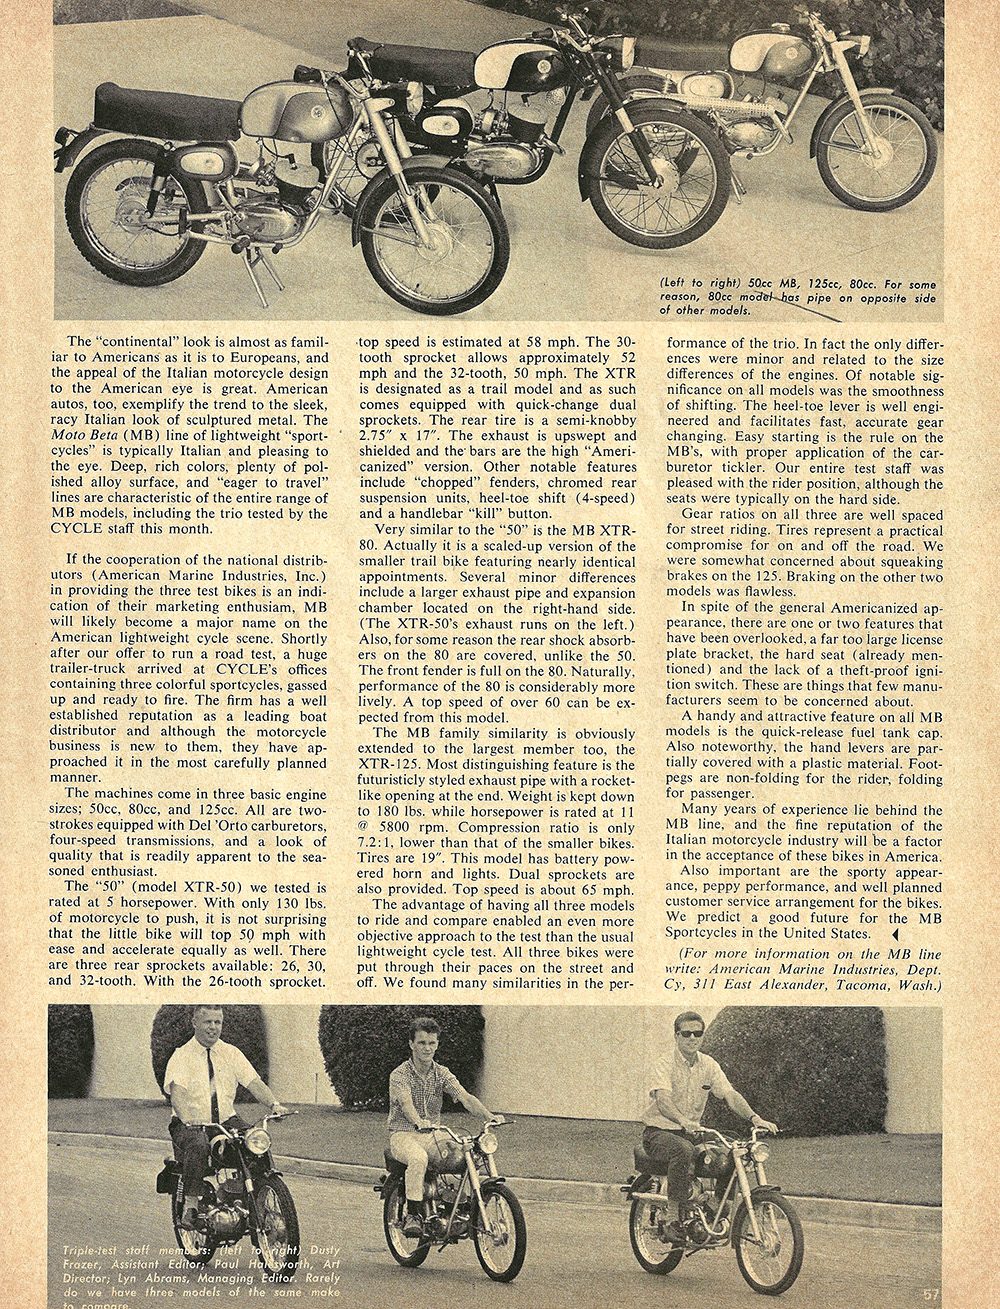 1966 Moto Beta 50cc 80cc 125cc road test 2.JPG